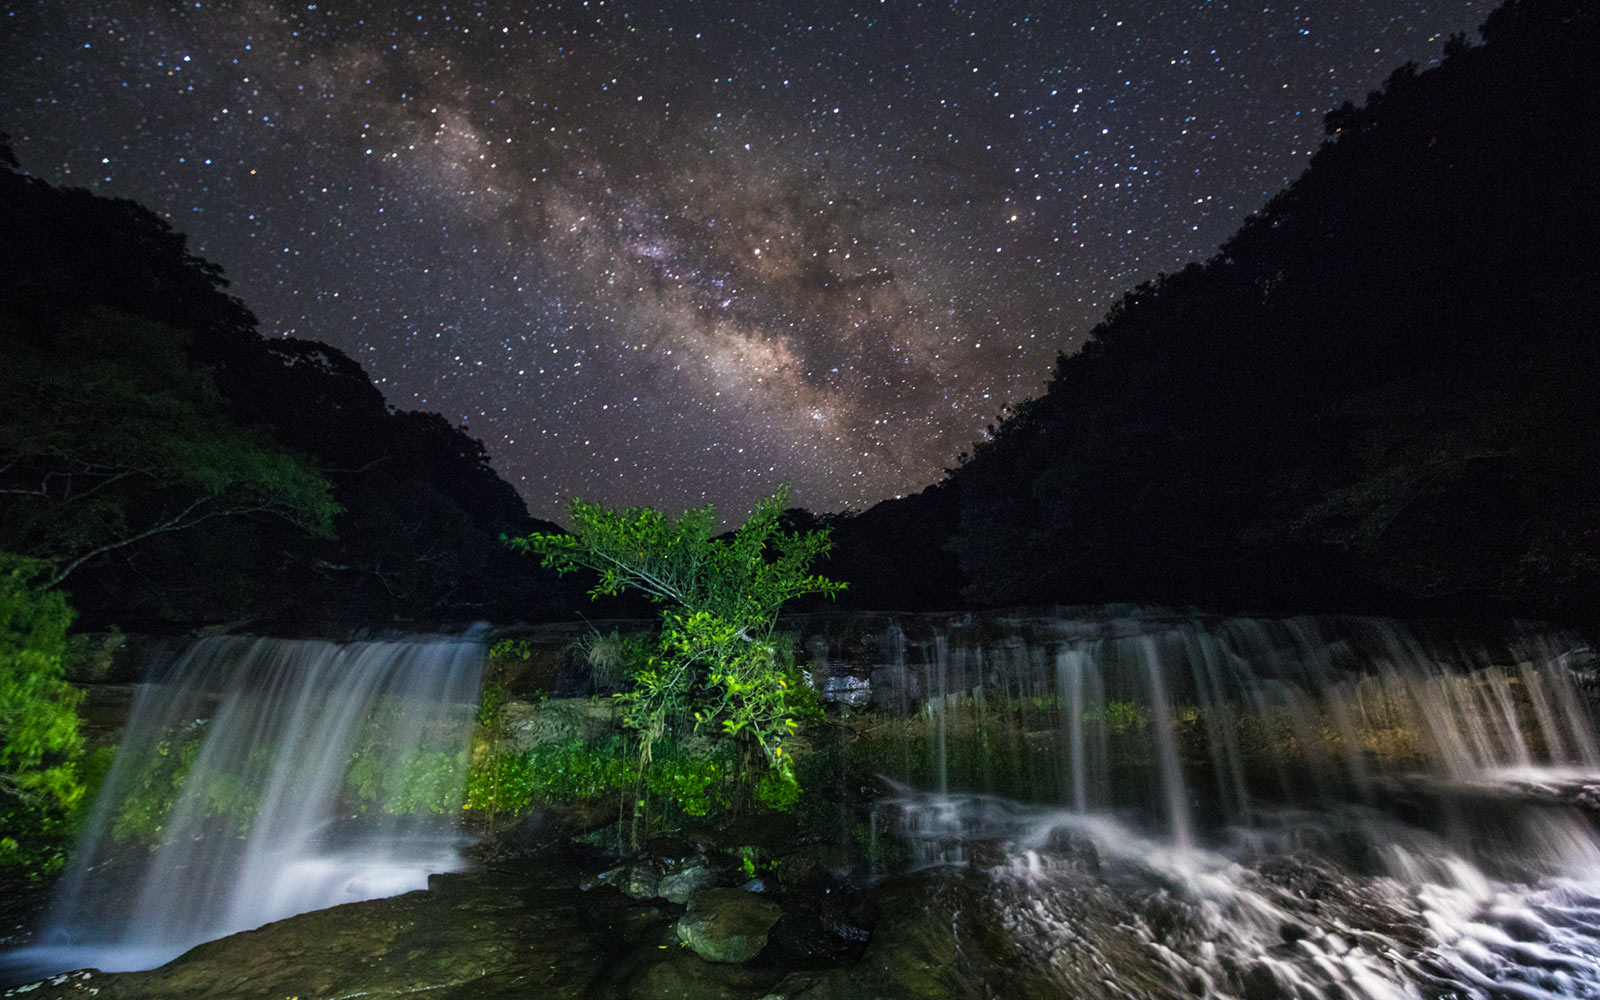 Newest Dark Sky Park, Iriomote Ishigake National Park, Japan